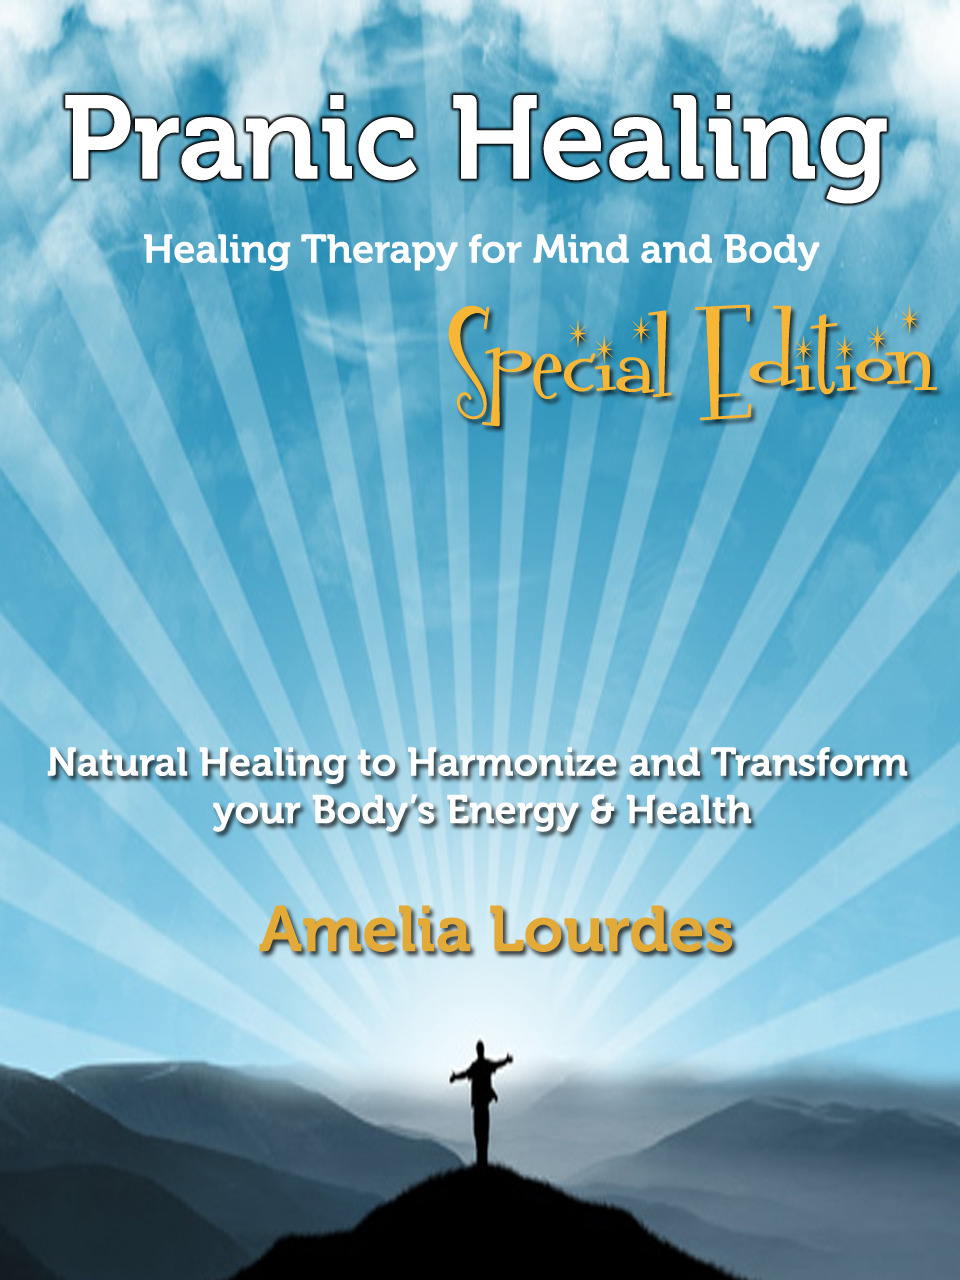 Pranic Healing: Healing Therapy for Mind and Body – Special Edition Natural Healing to Harmonize and Transform your Body's Energy & Health By: Greatest Books